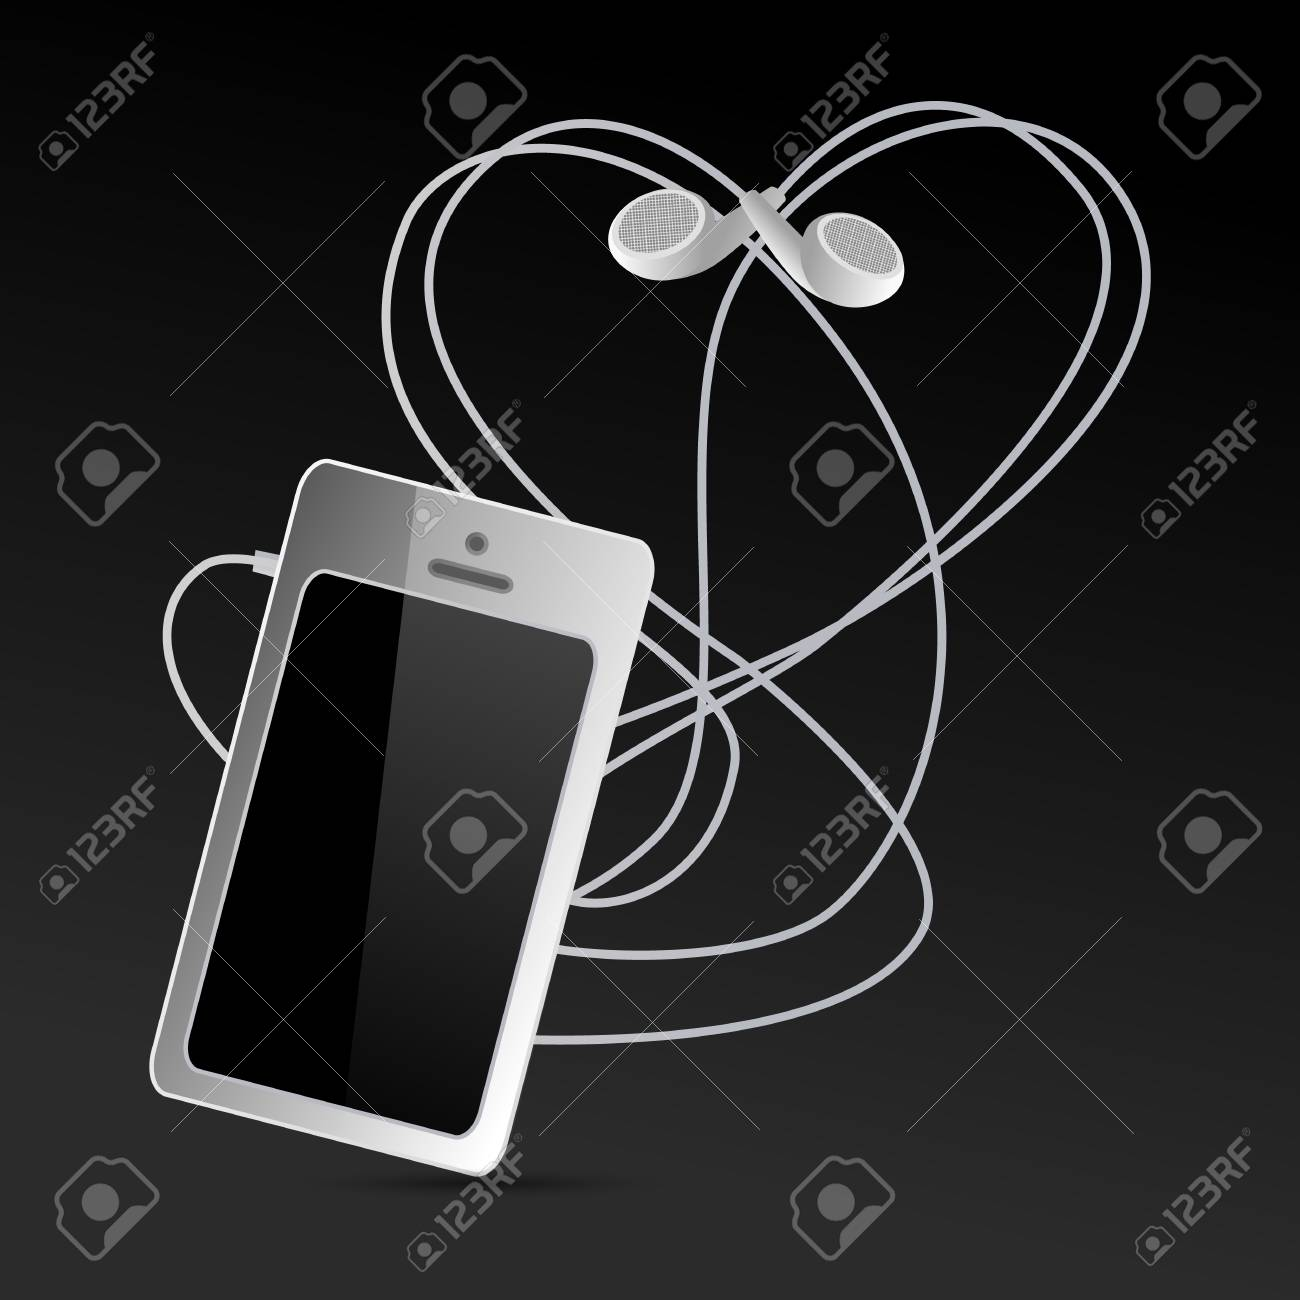 Smartphone And Headphones On A Dark Background Mobile Phone With A